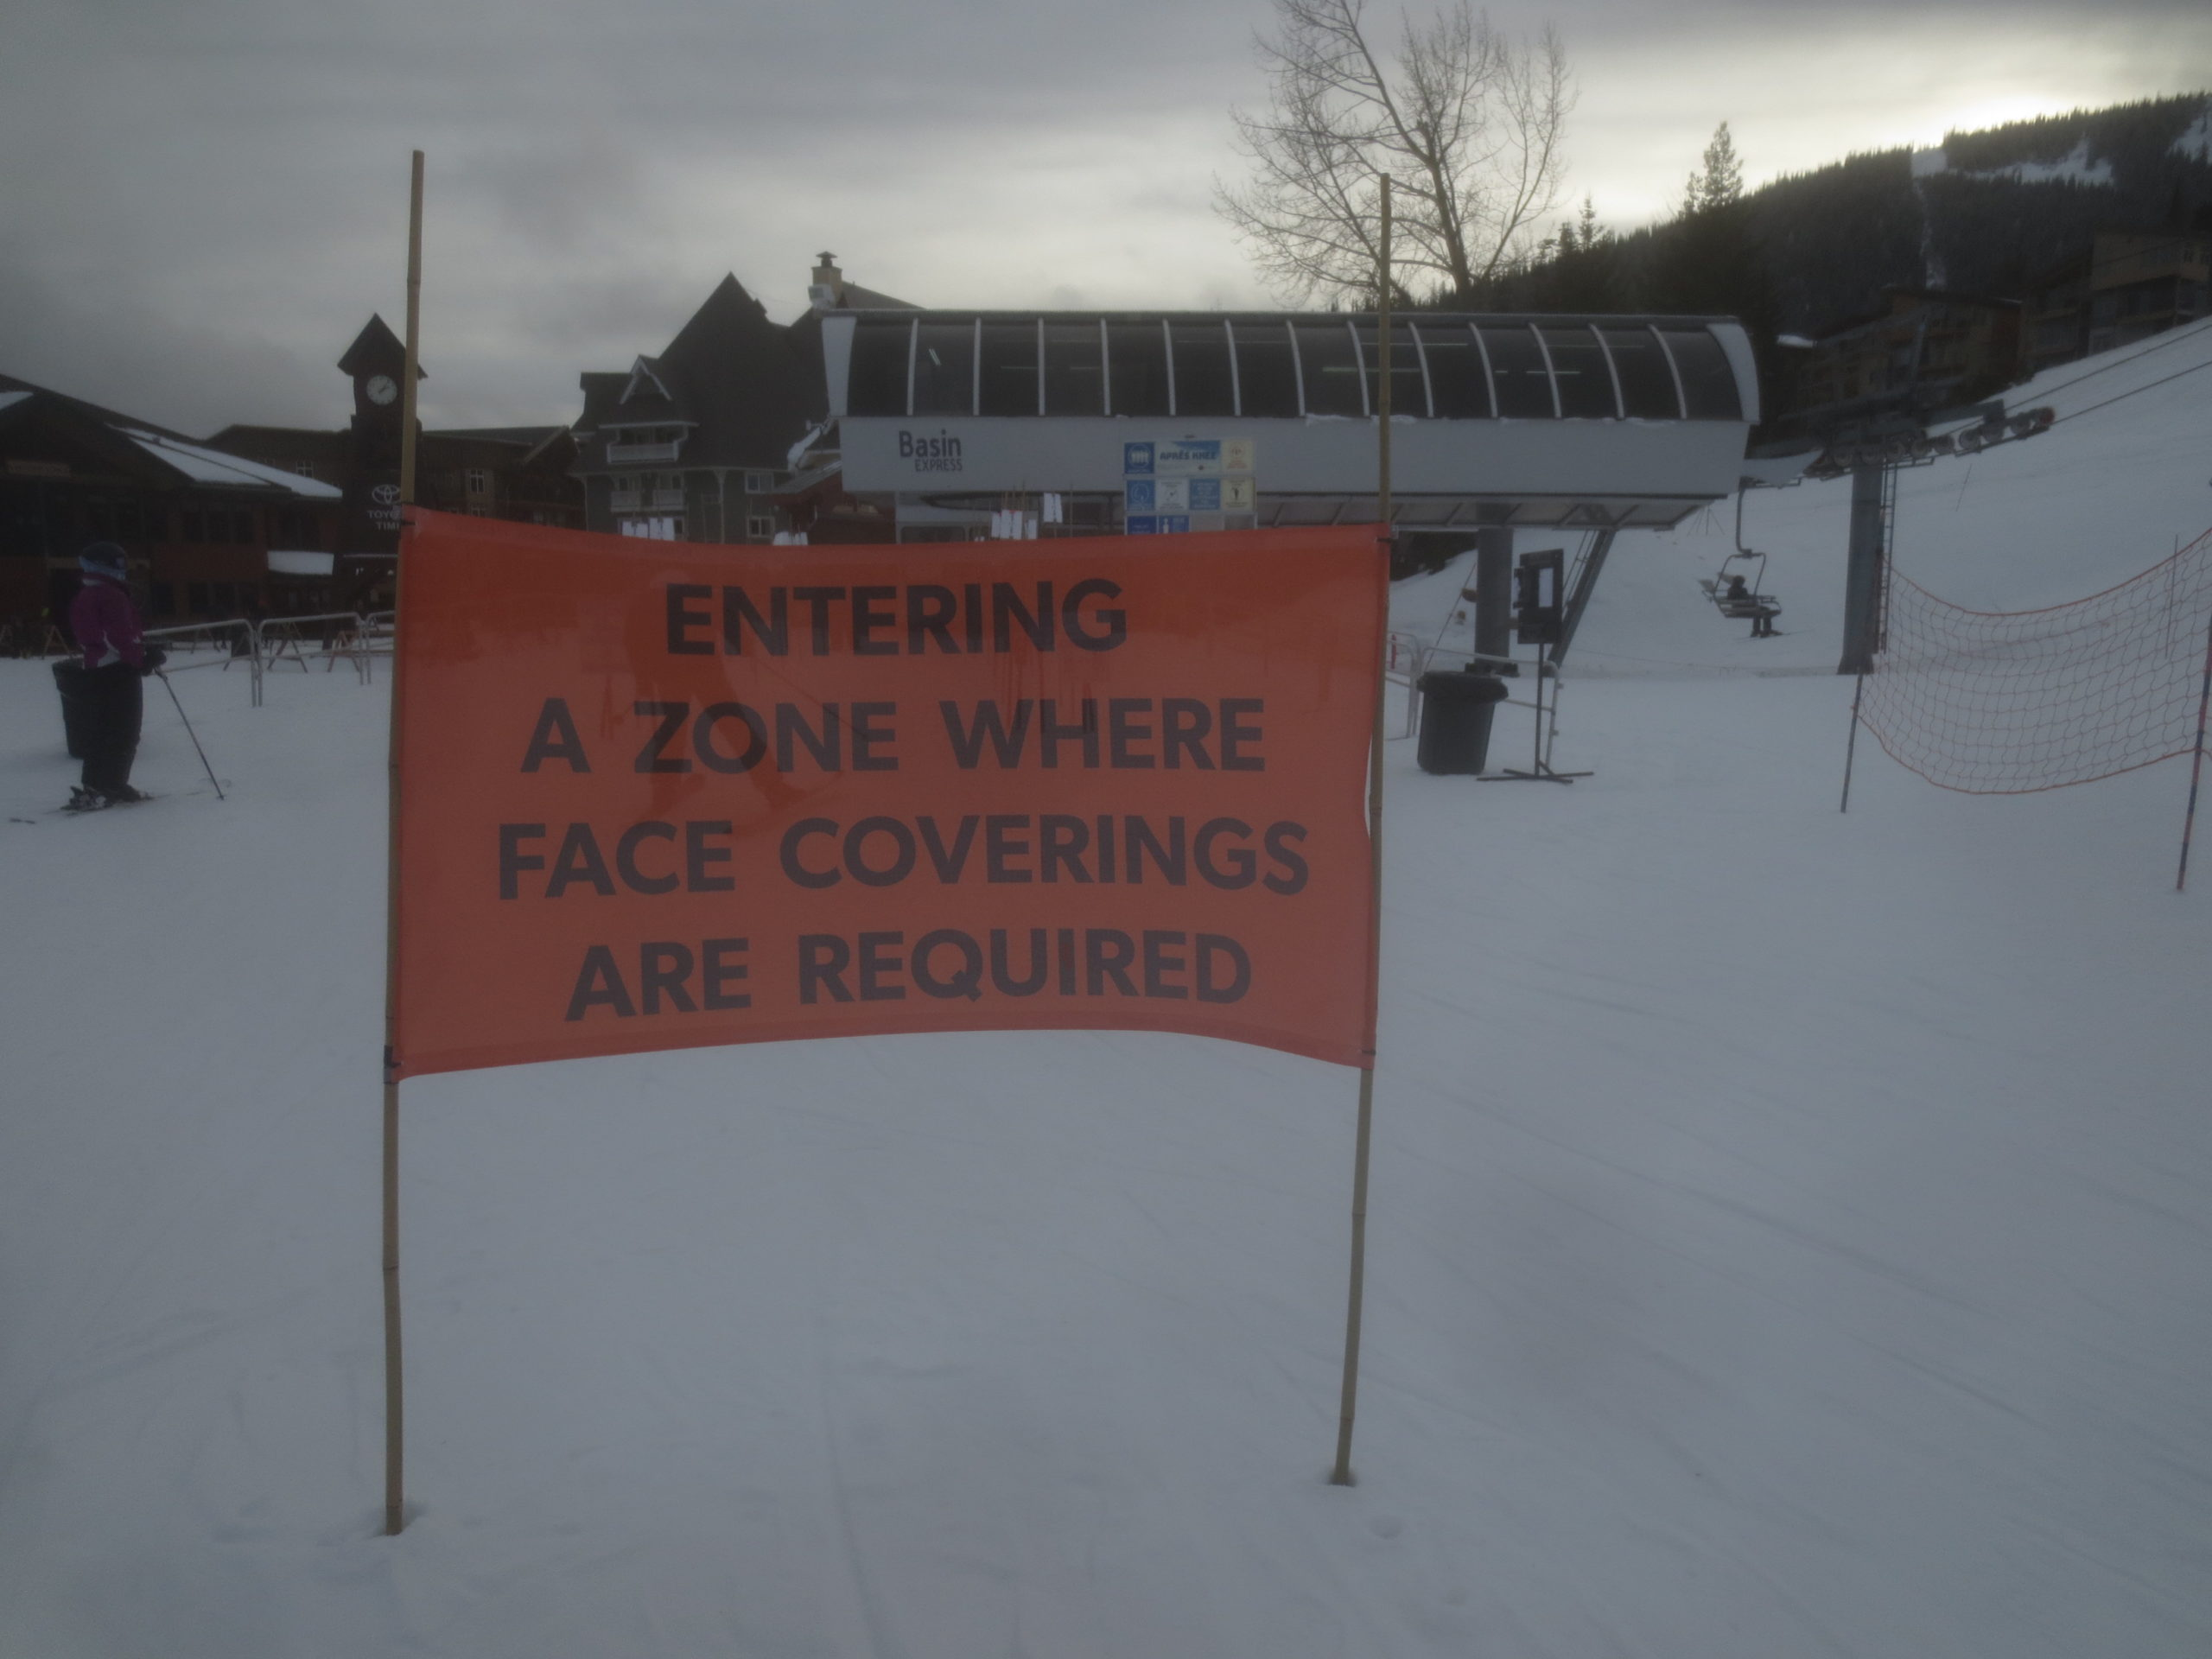 sign near a ski lift saying entering a zone where face coverings are required